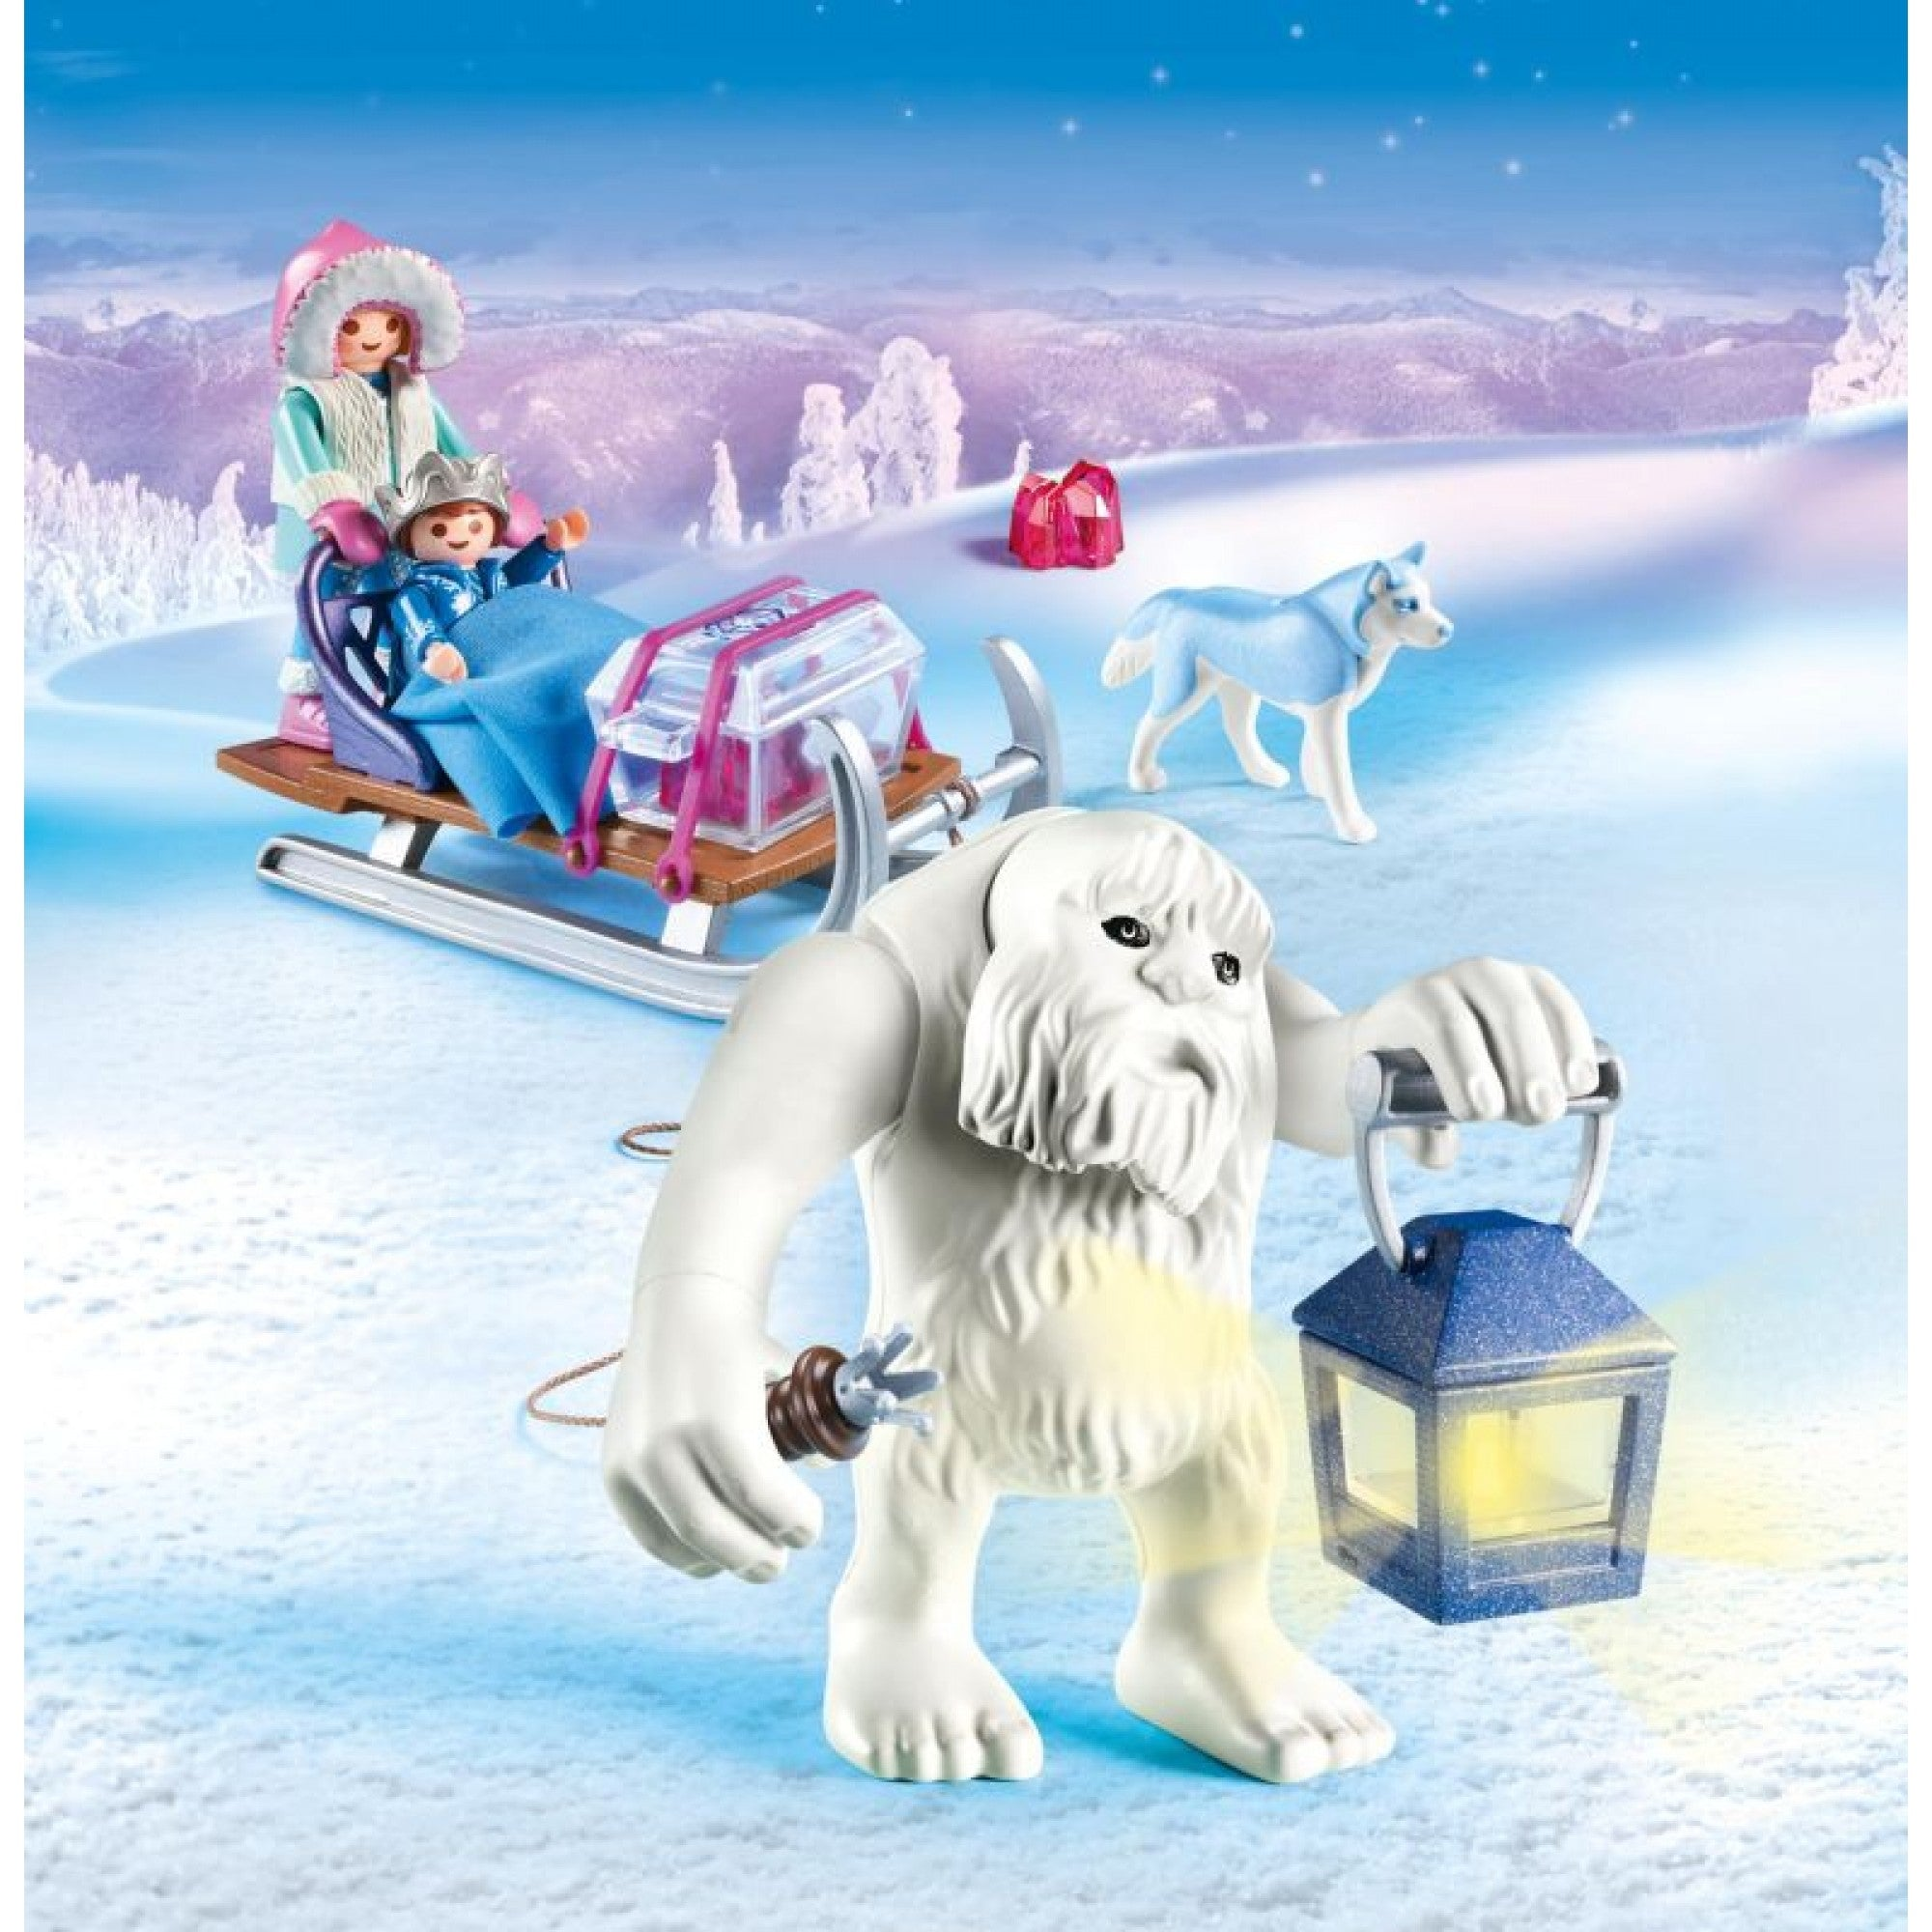 Yeti with Sleigh - Playmobil